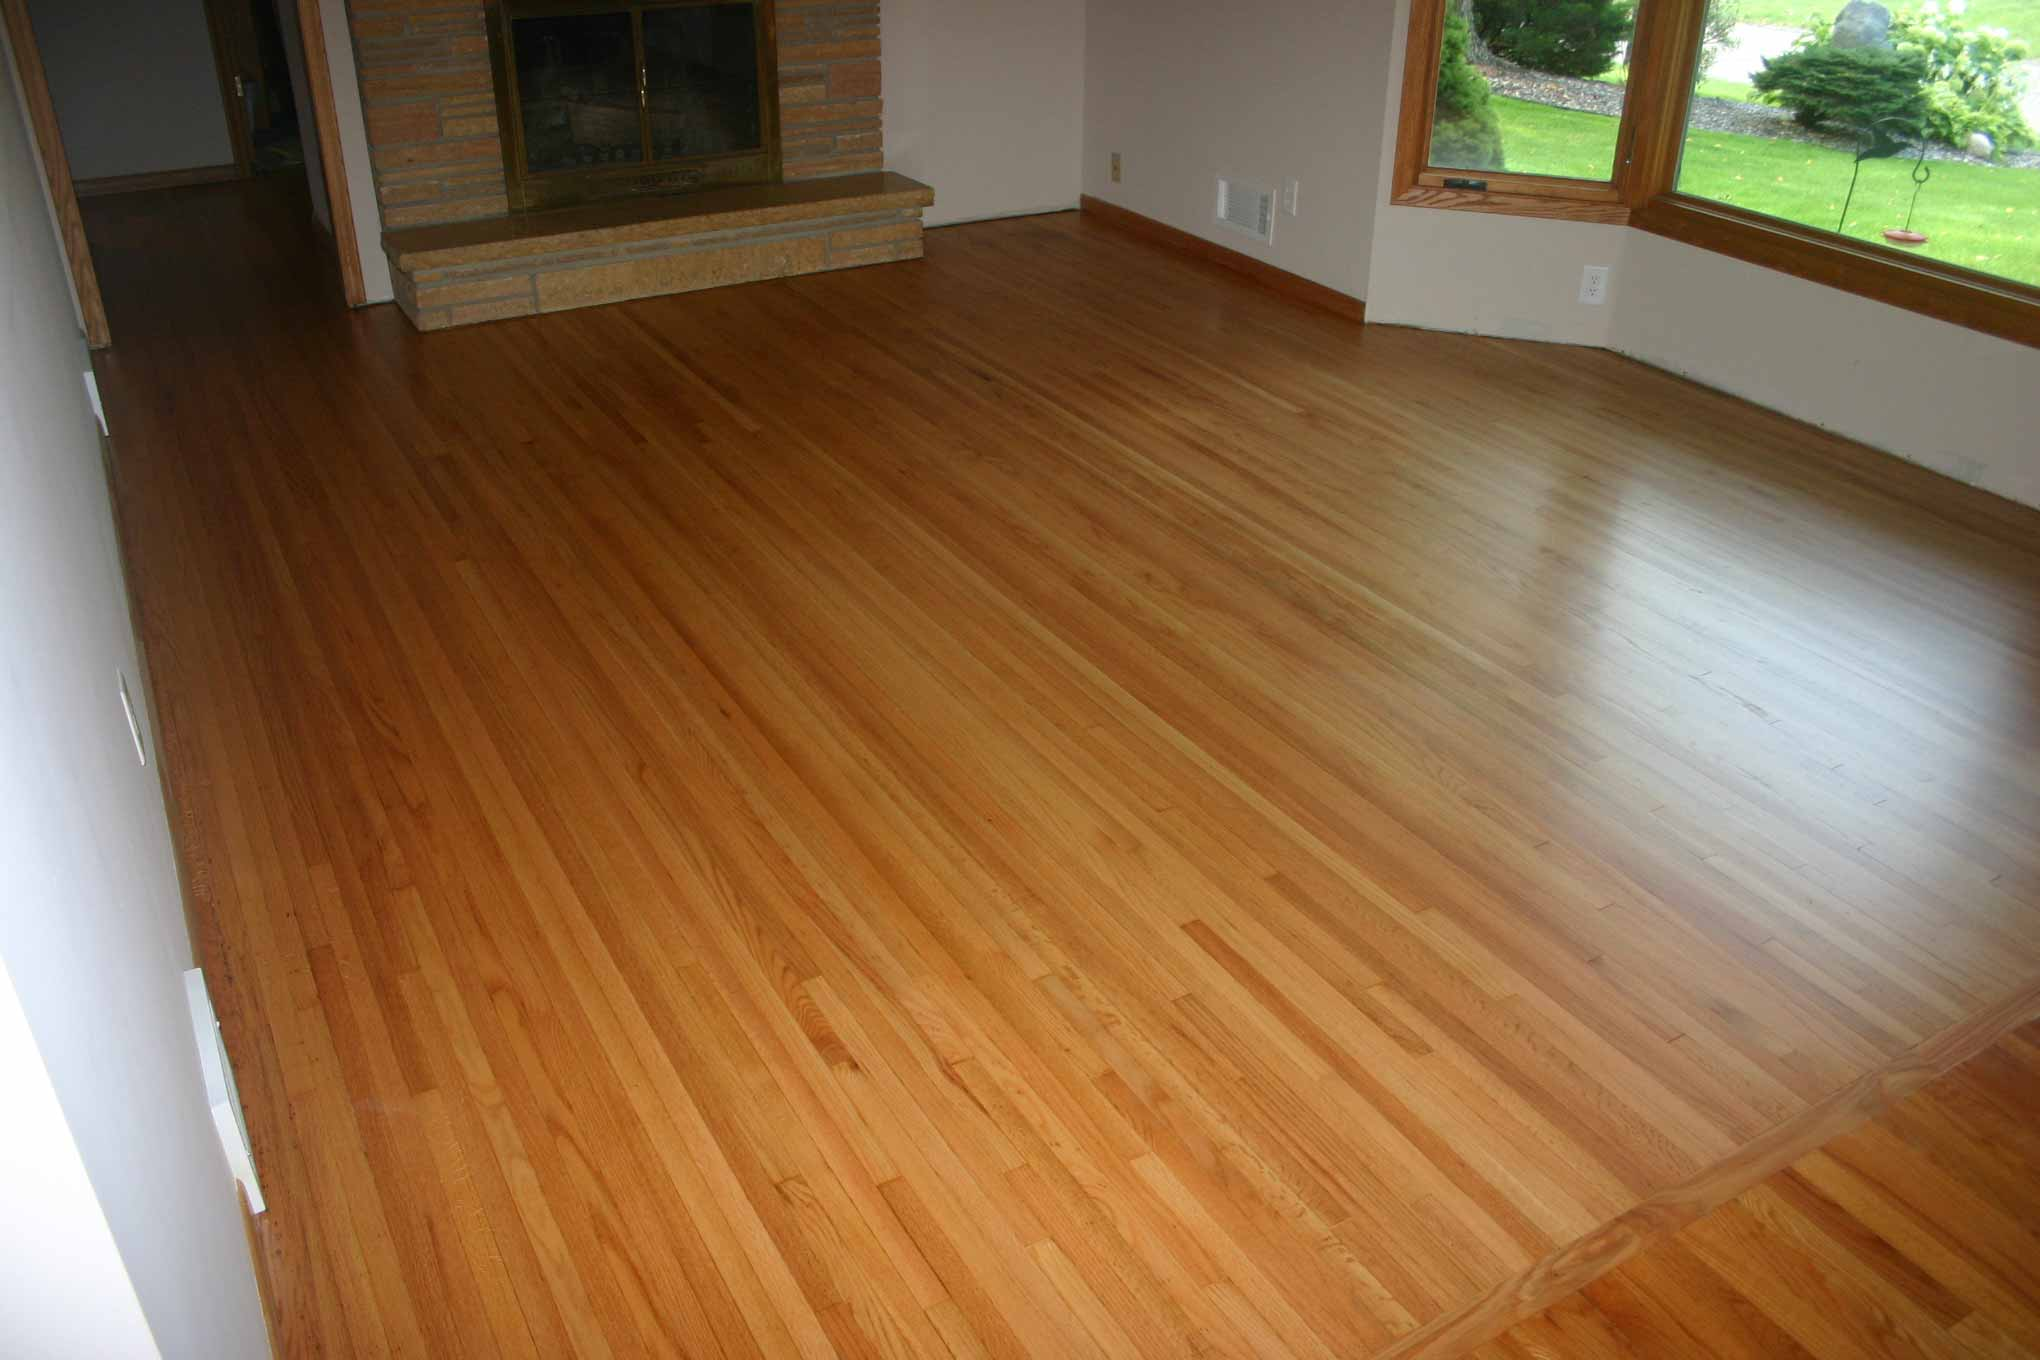 After photo of hardwood flooring in living room